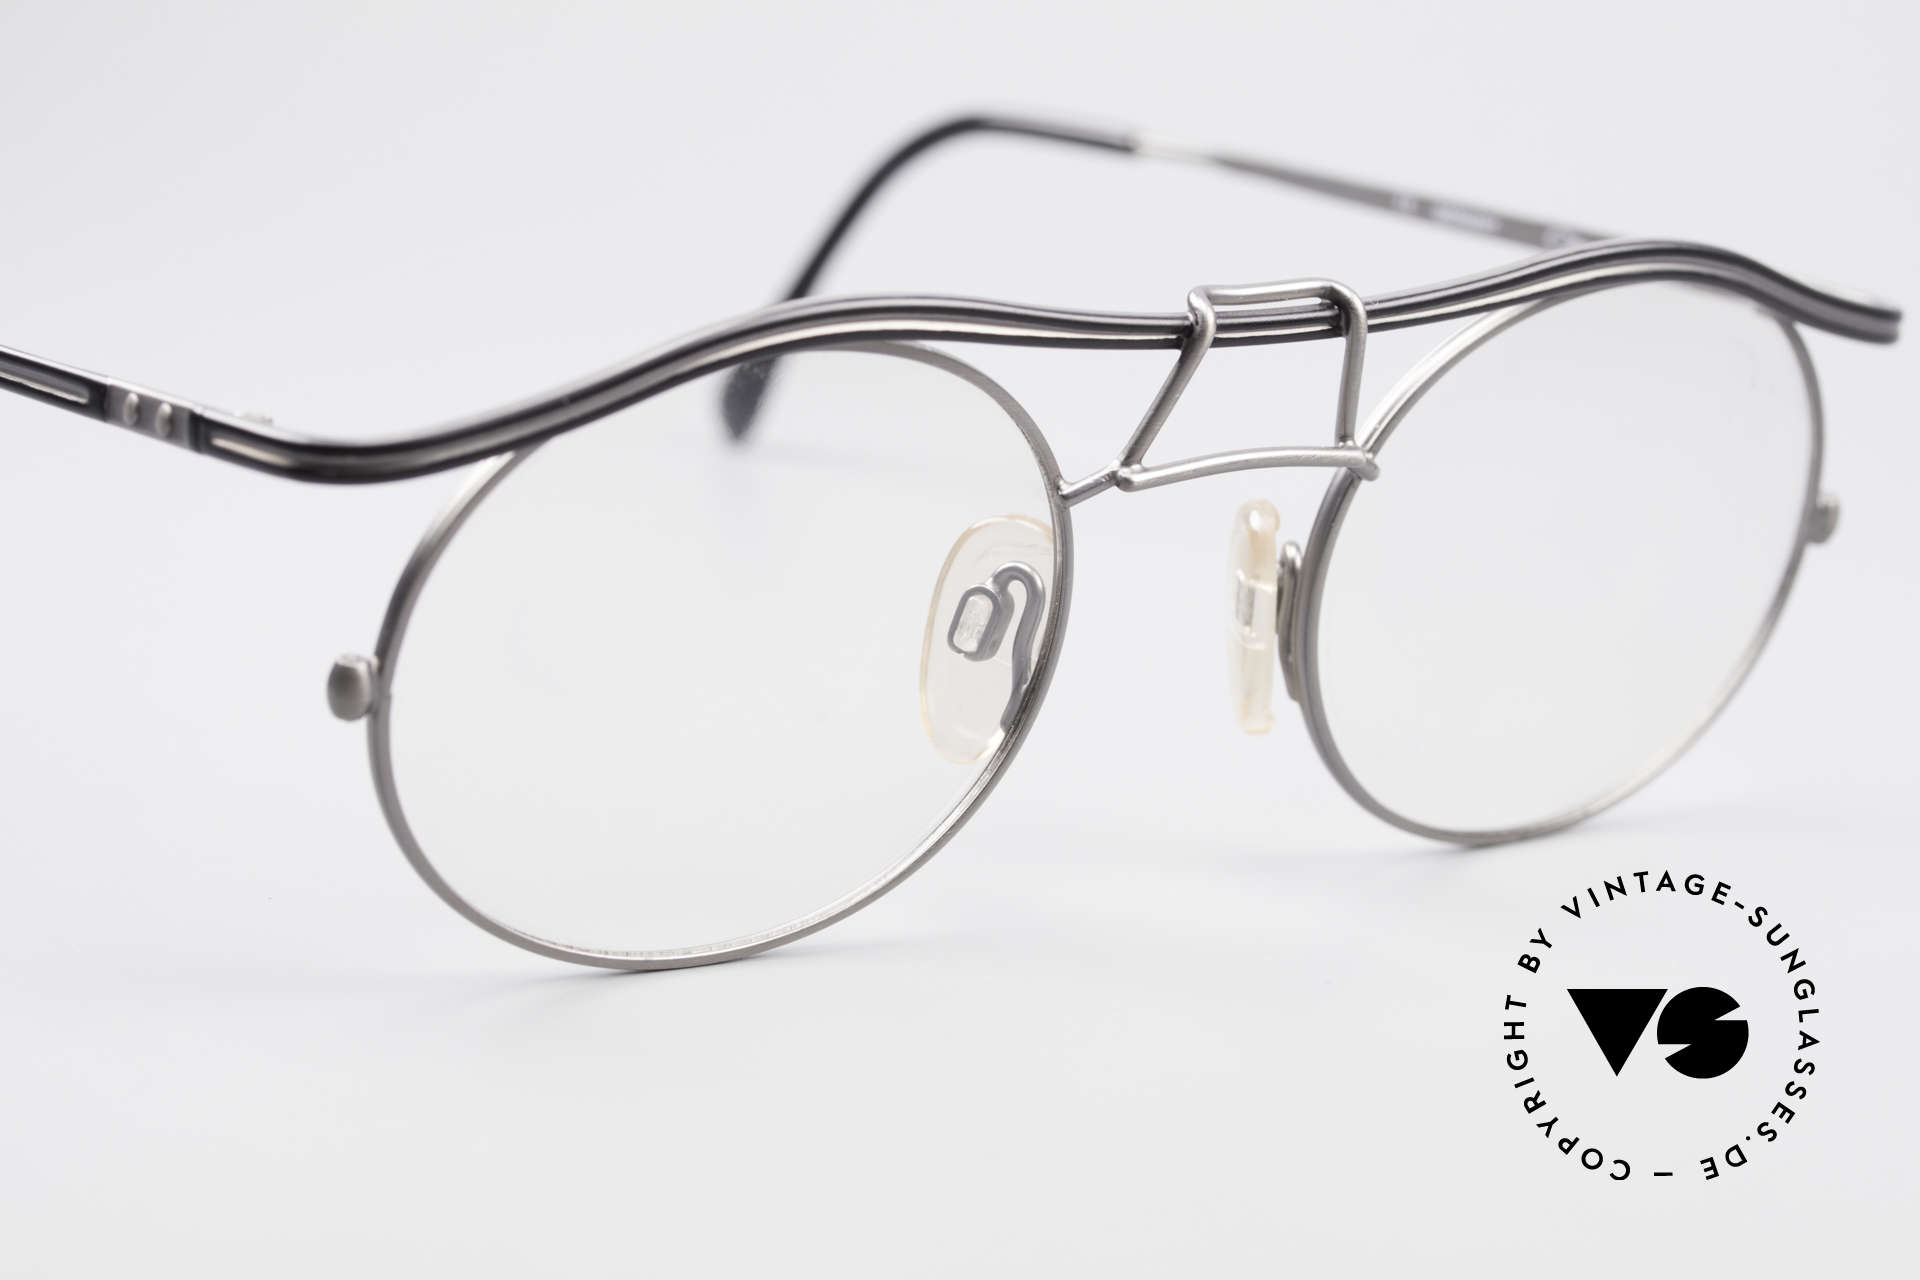 Cazal 1110 - Point 2 90's Industrial Vintage Frame, NO RETRO FASHION; but an old ORIGINAL from 1999, Made for Men